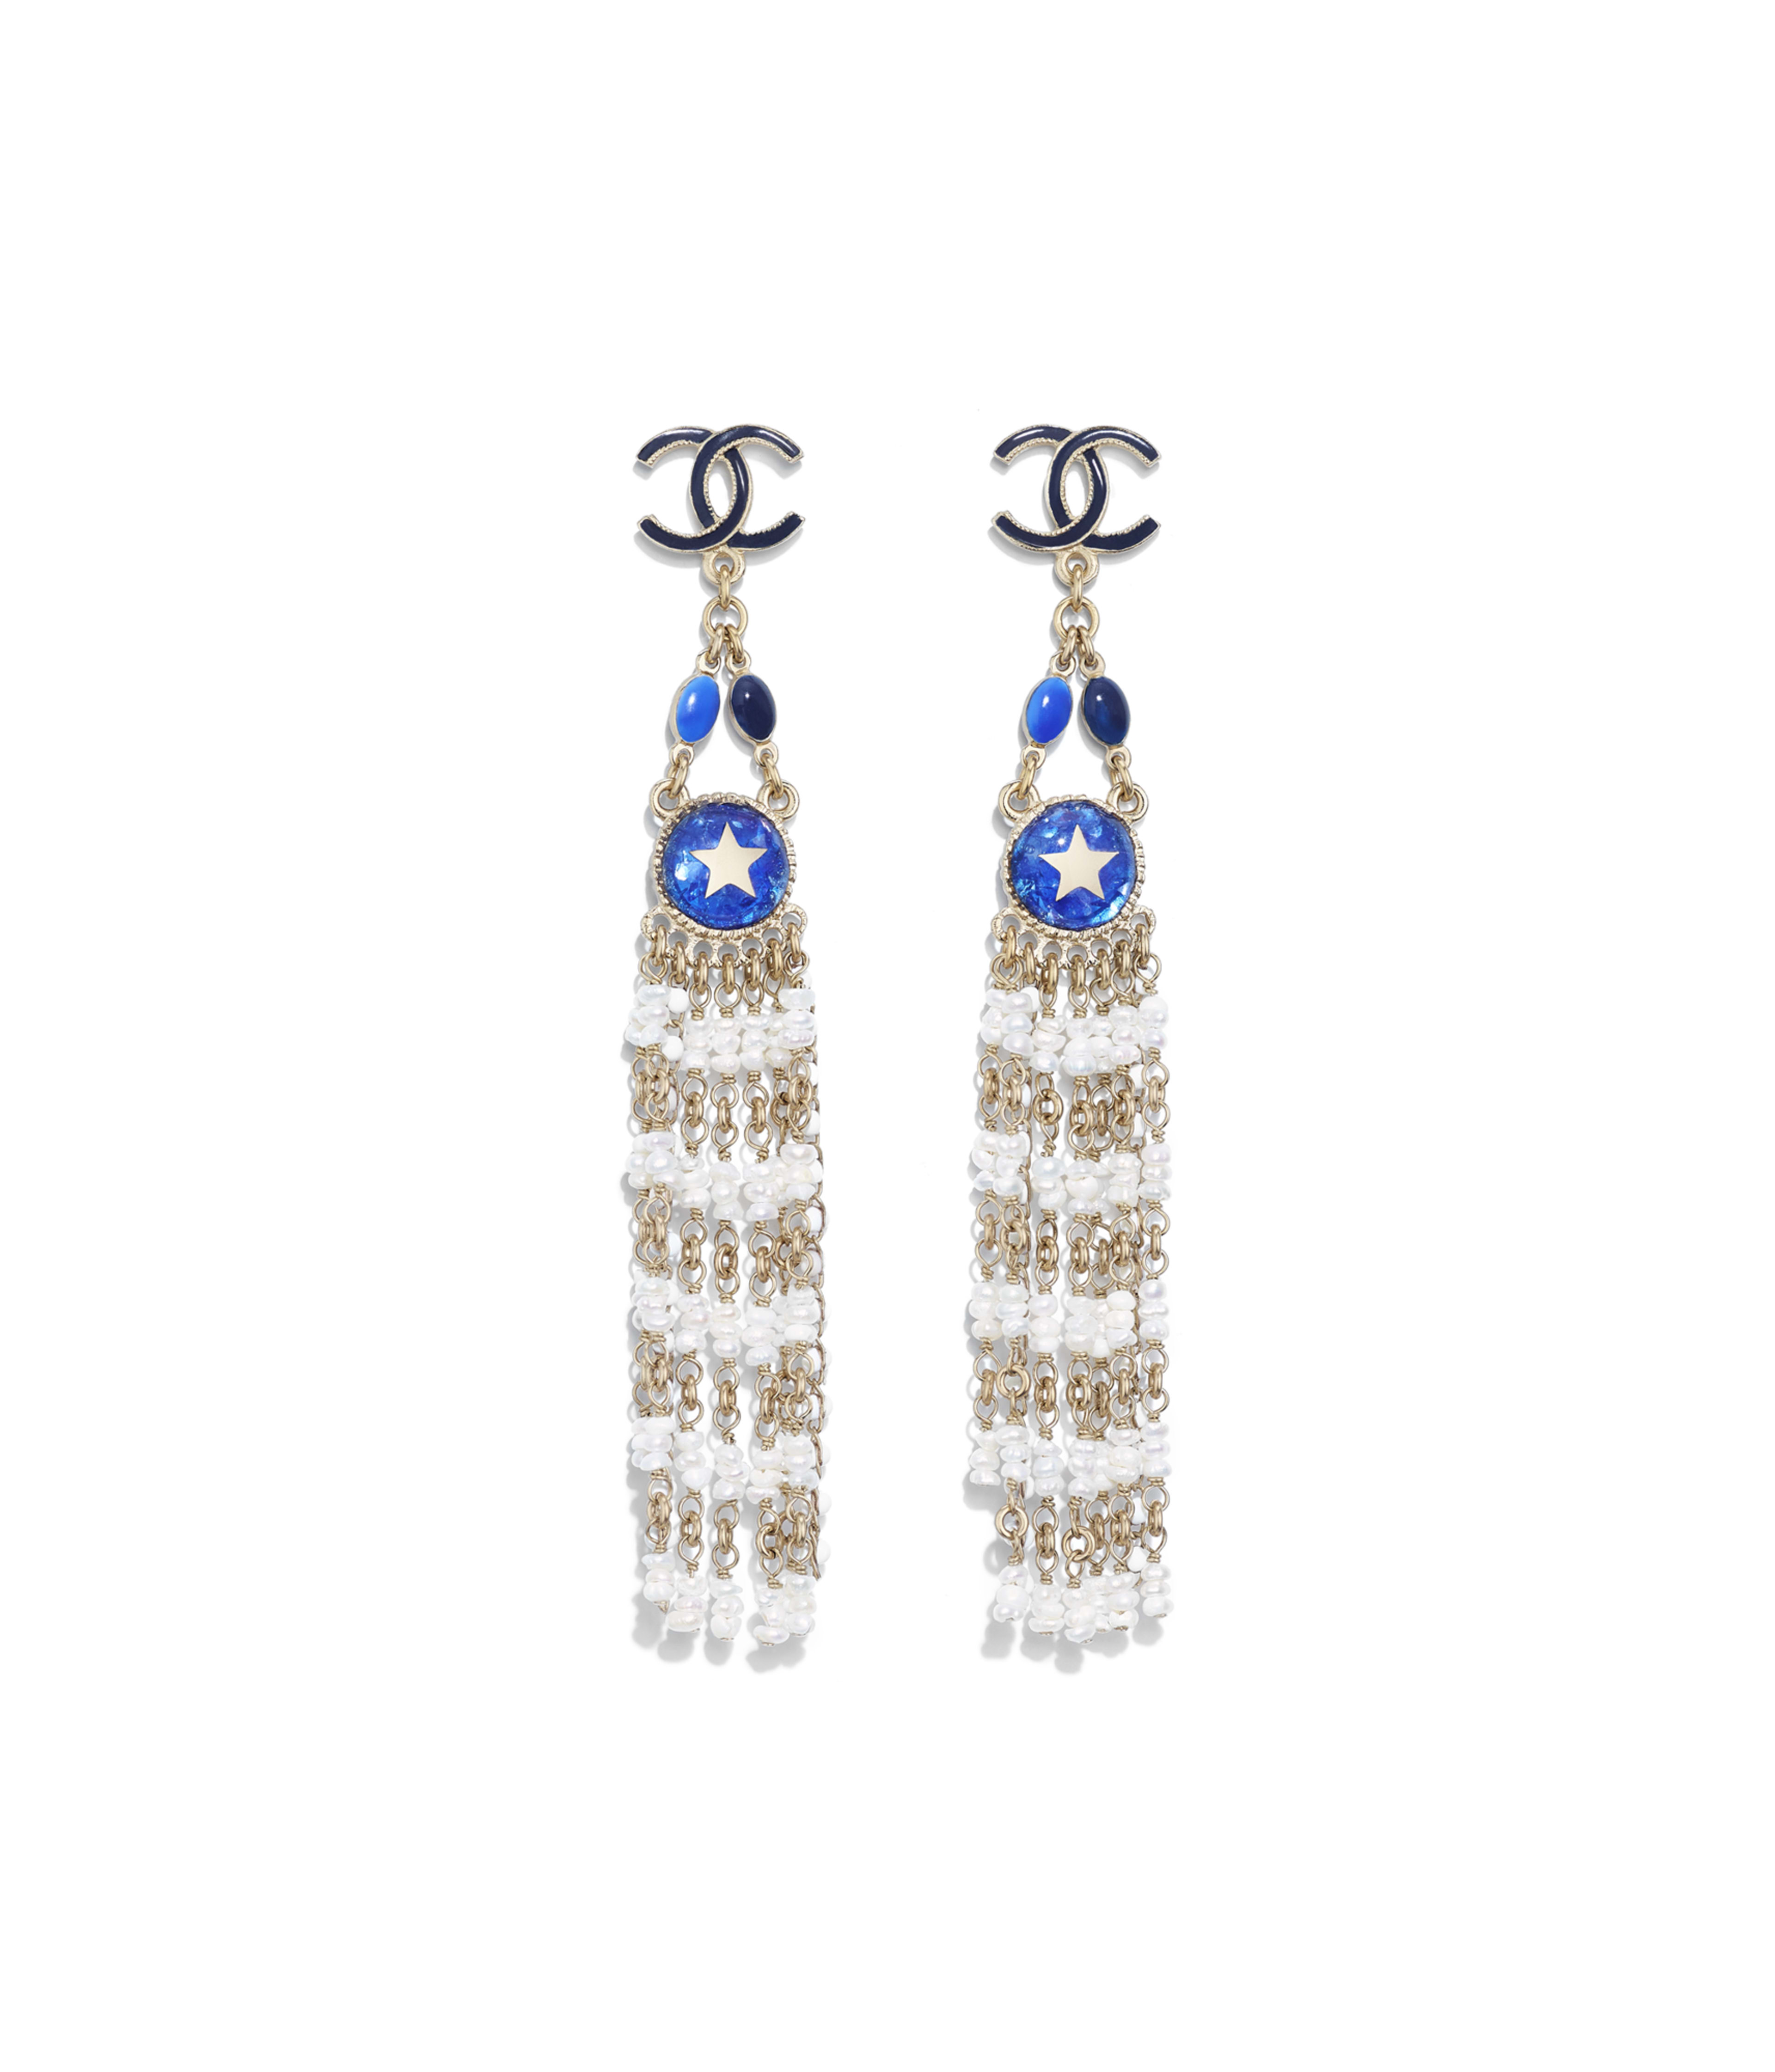 Earrings Metal Cultured Fresh Water Pearls Gl Resin Gold Blue Pearly White Ref Ab0708y47456z8888